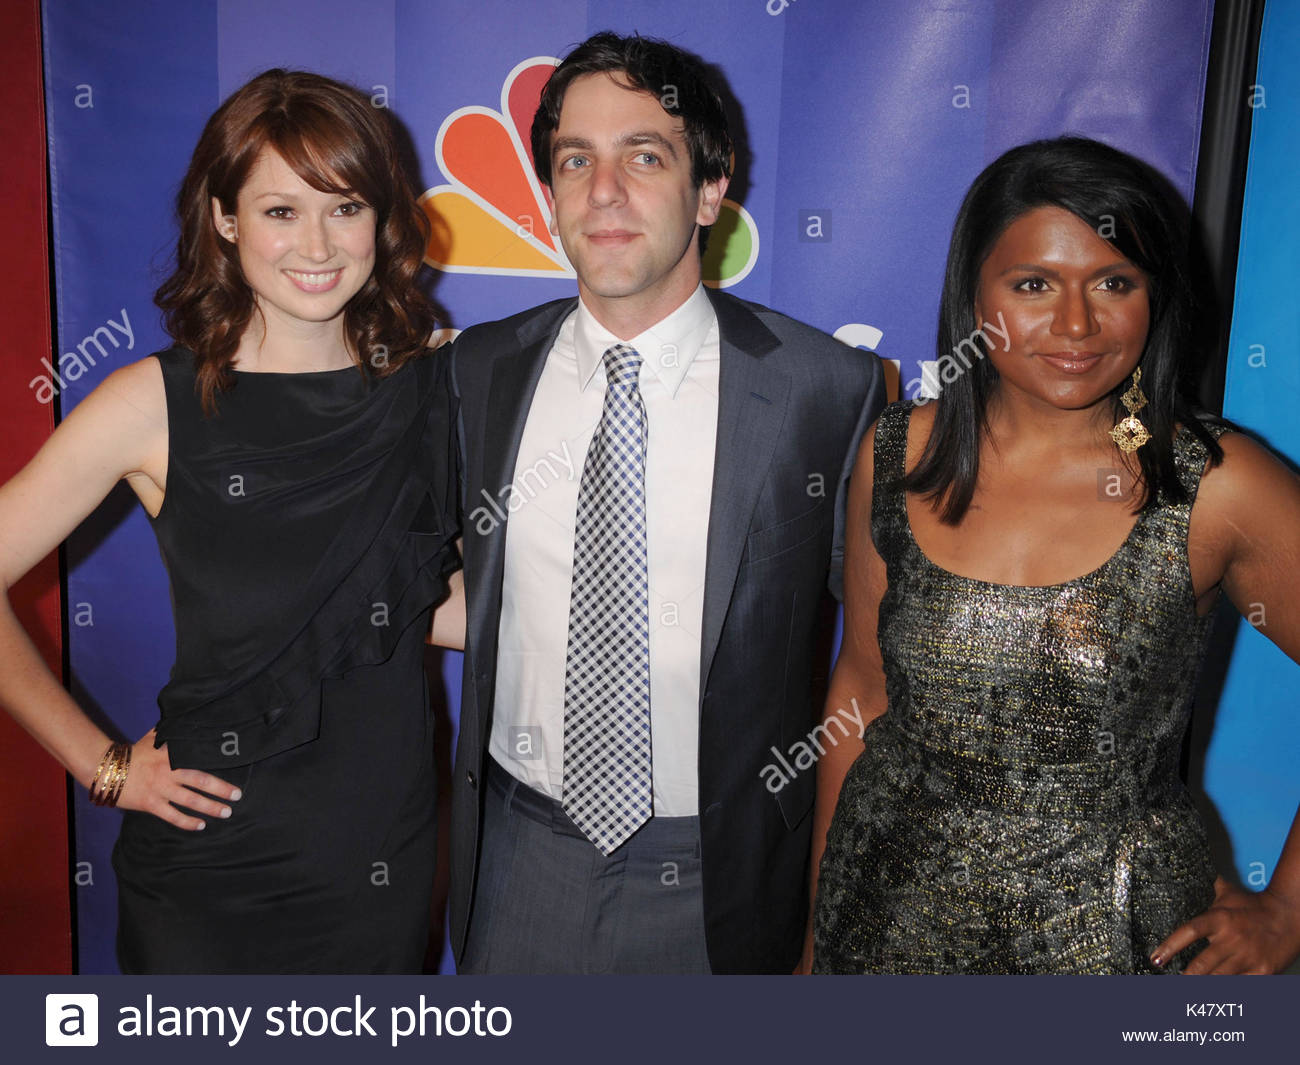 Mindy Kaling And Ellie Kemper